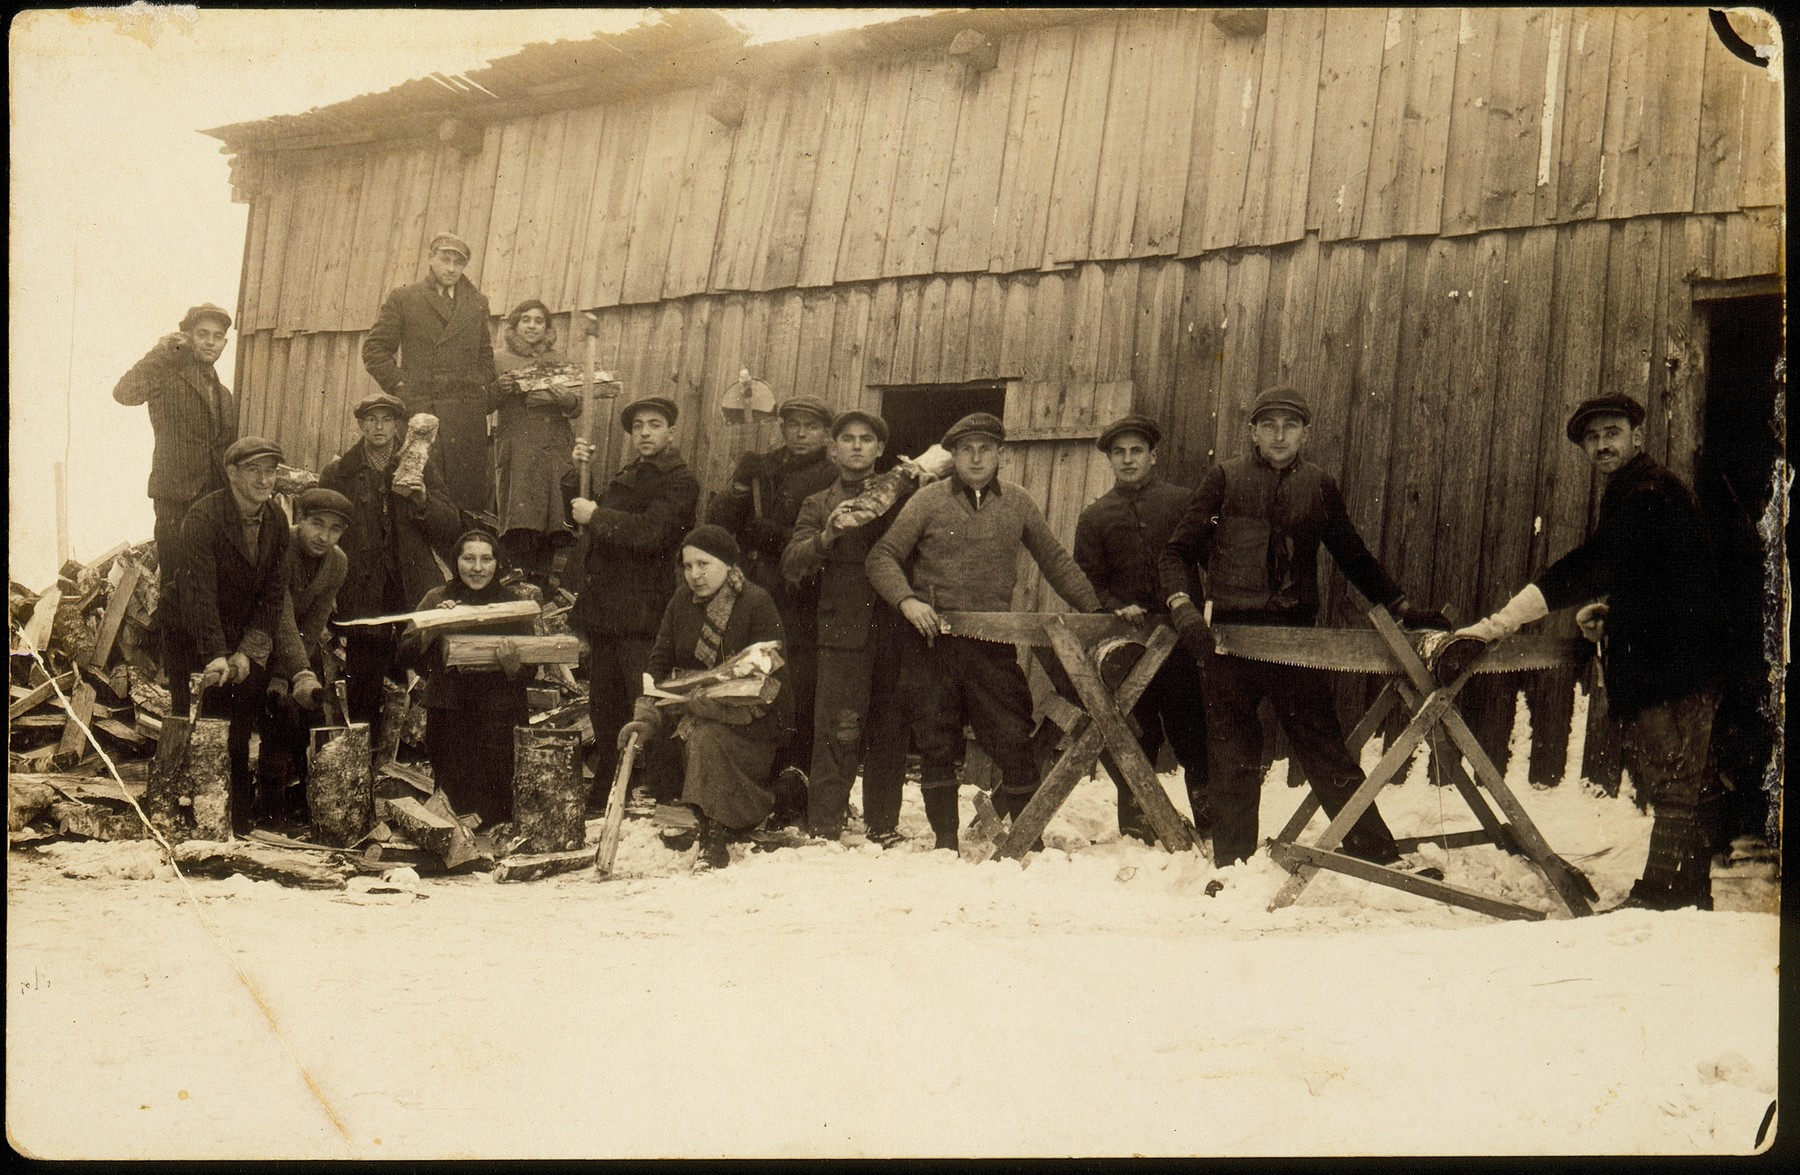 Members of the Hehalutz hachshara in Oszmiana saw wood in the lumberyard.